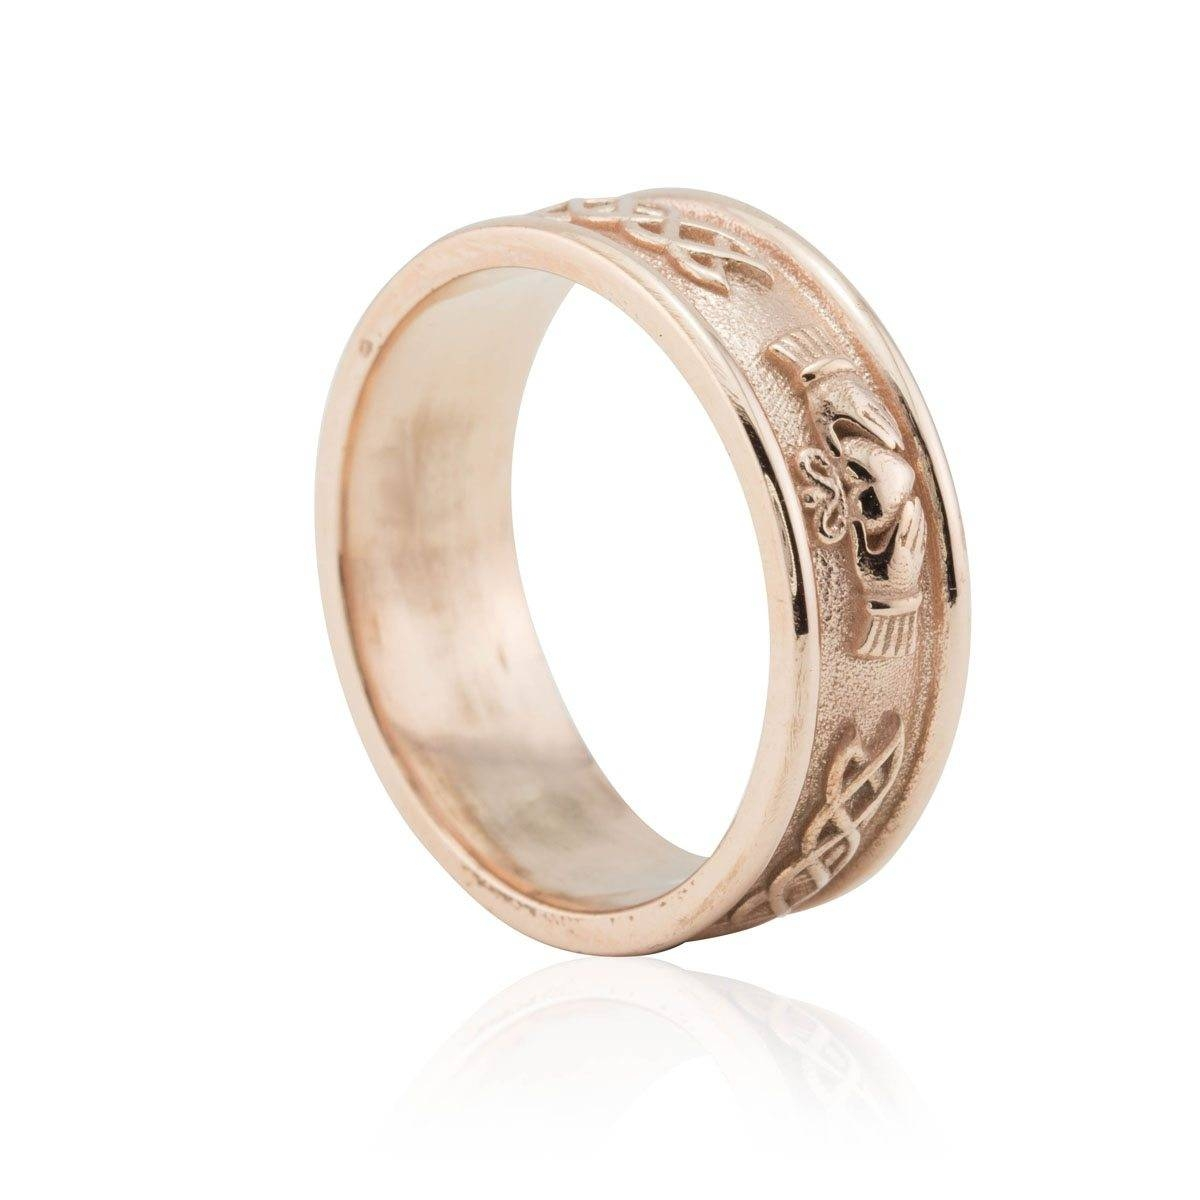 Men's Wedding Band With Irish Claddagh In 14k Rose Gold 8mm Wide Intended For Men's Claddagh Wedding Bands (View 5 of 10)